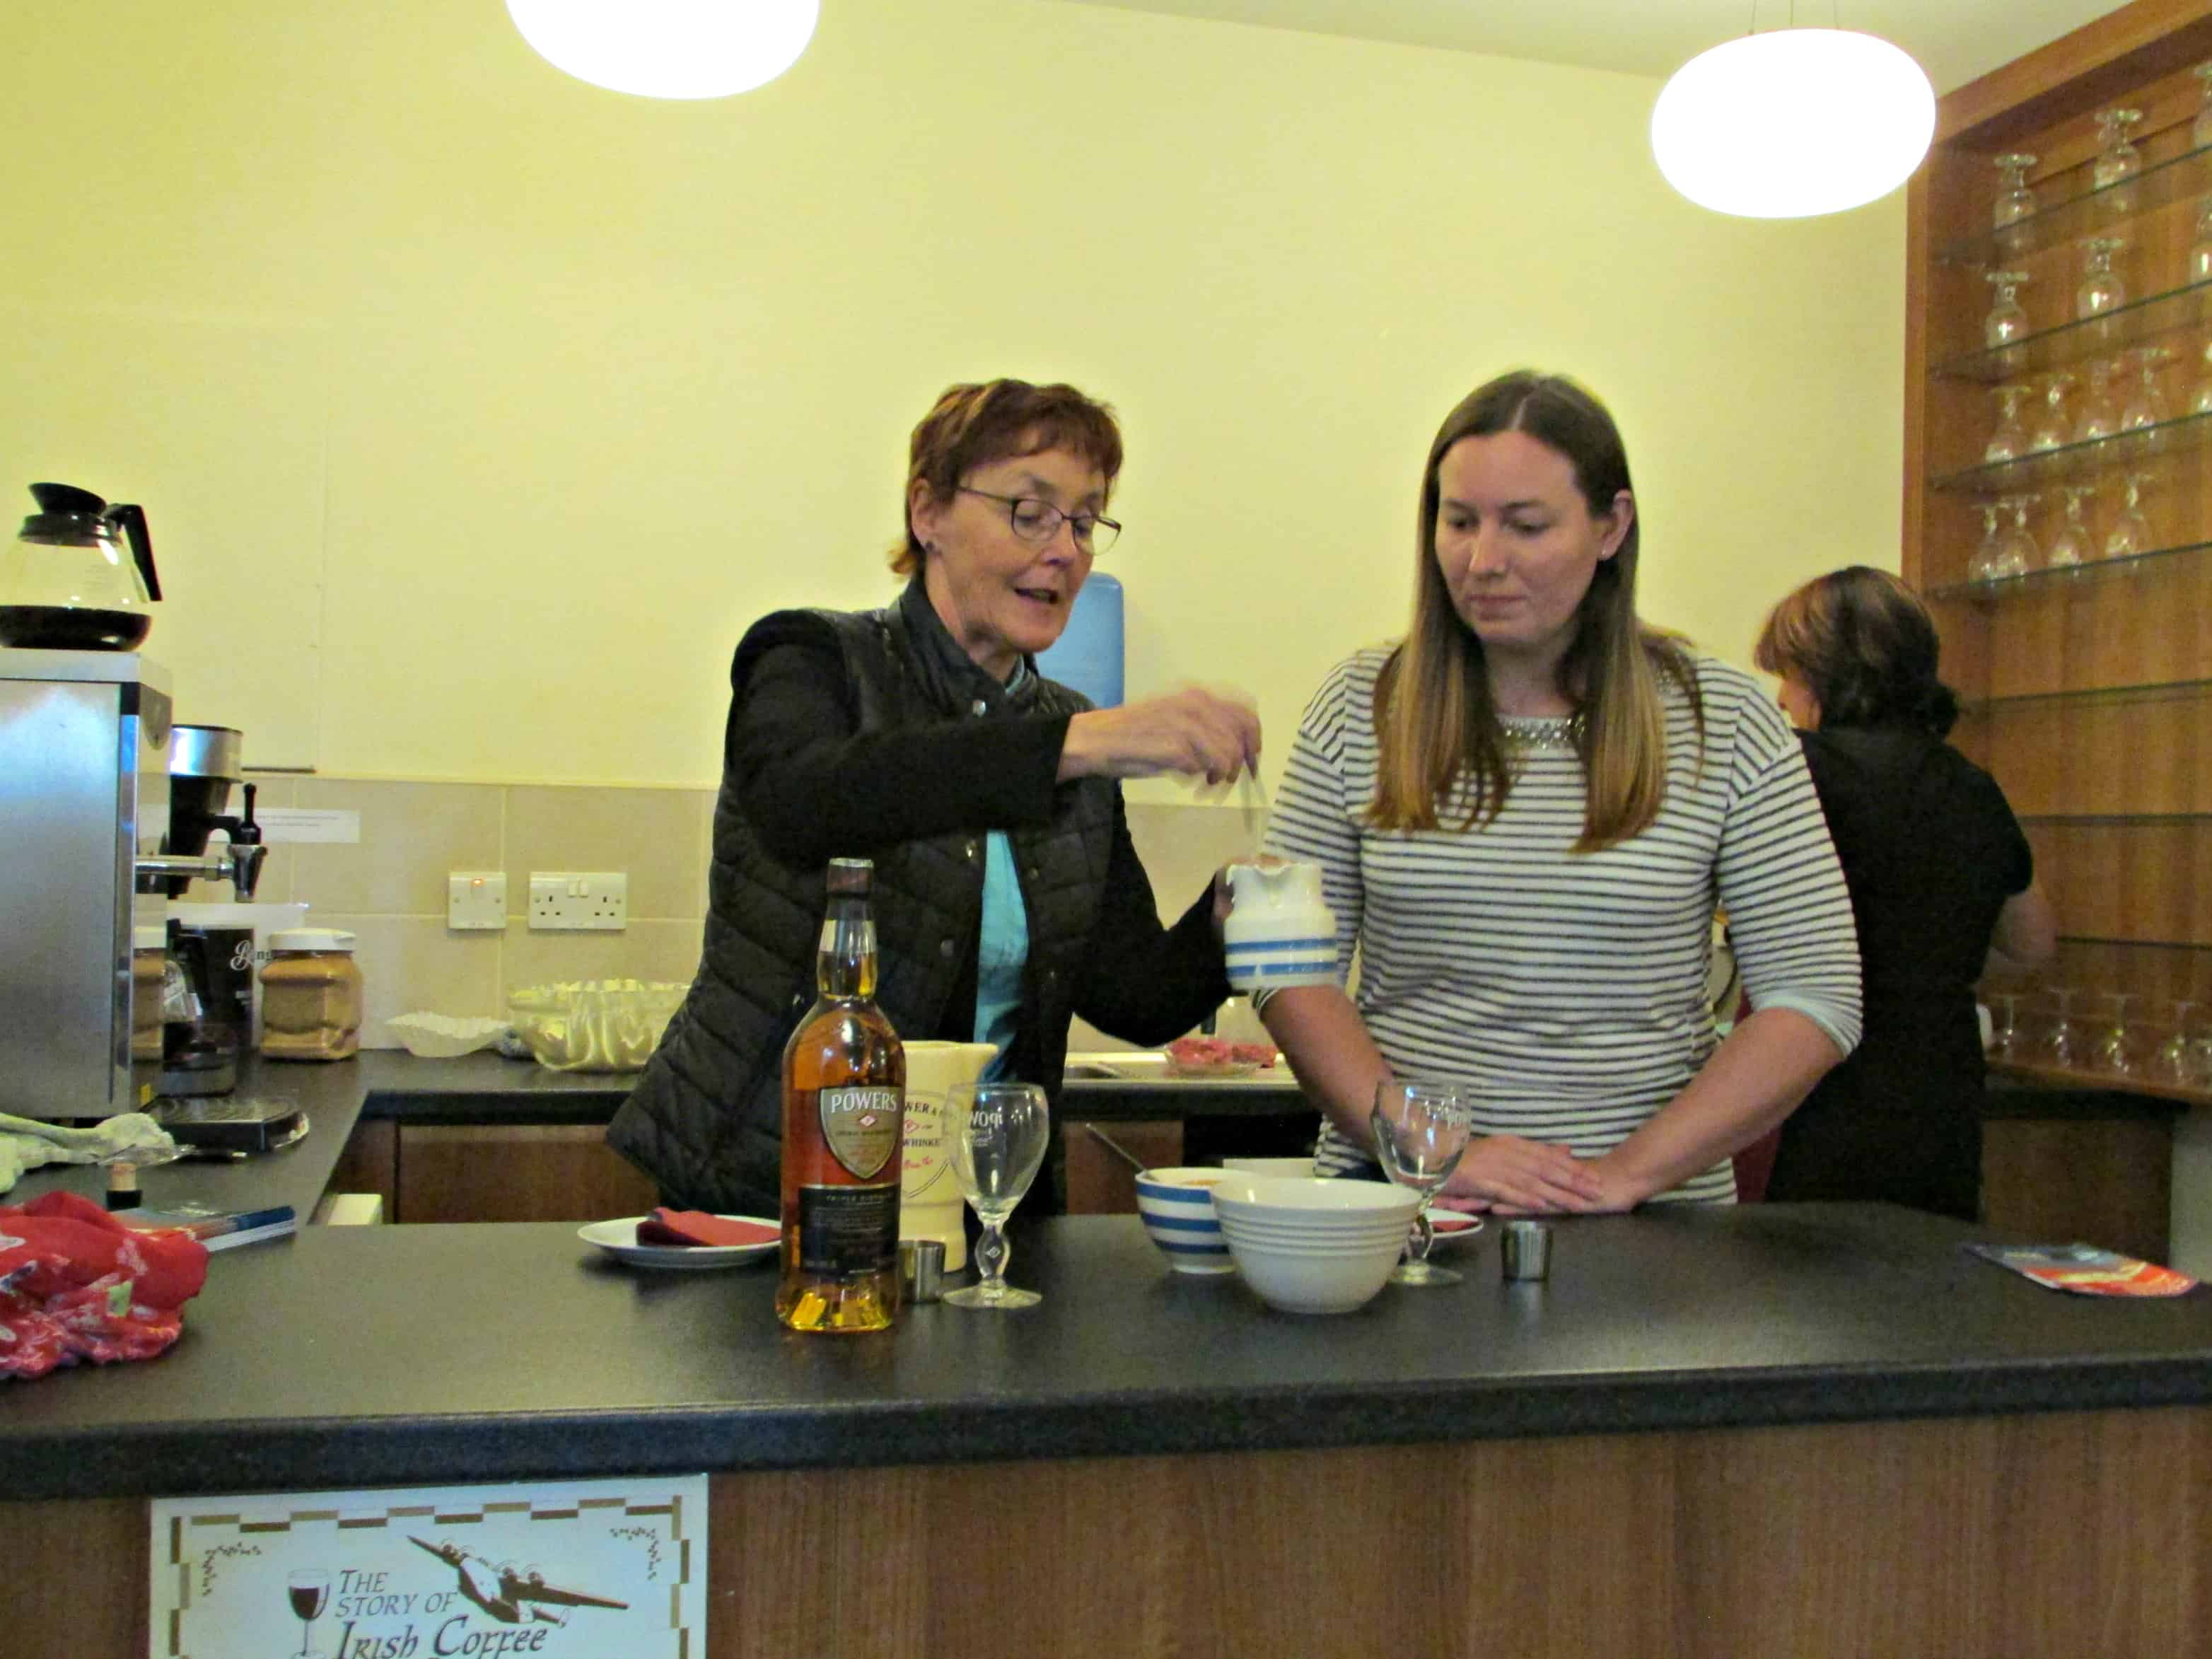 Helen Demonstrating How to Make Irish Coffee